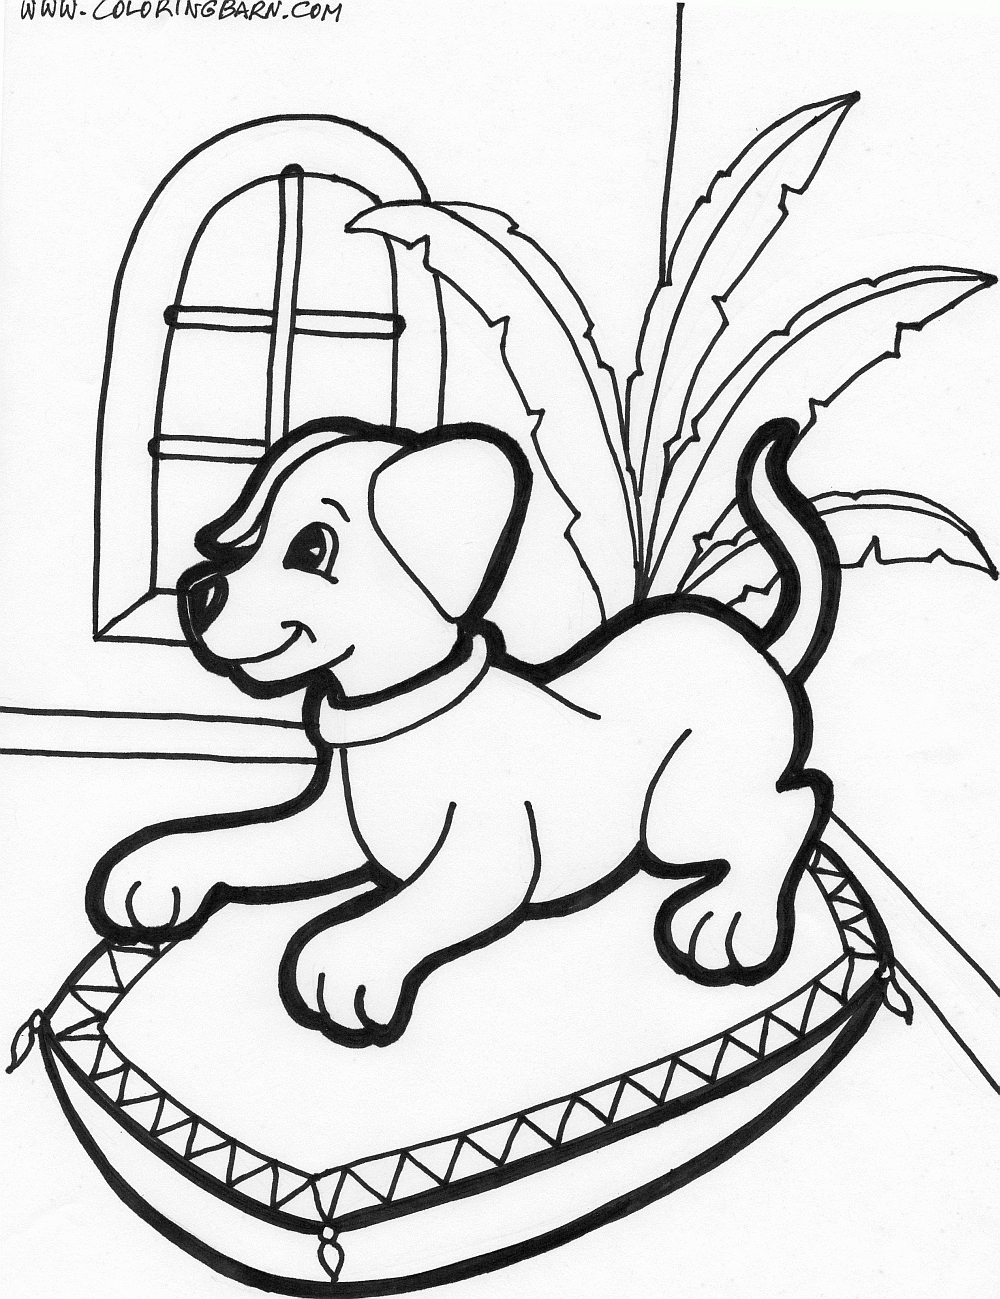 puppy coloring pages to print | puppies inside coloring page | Fun ...